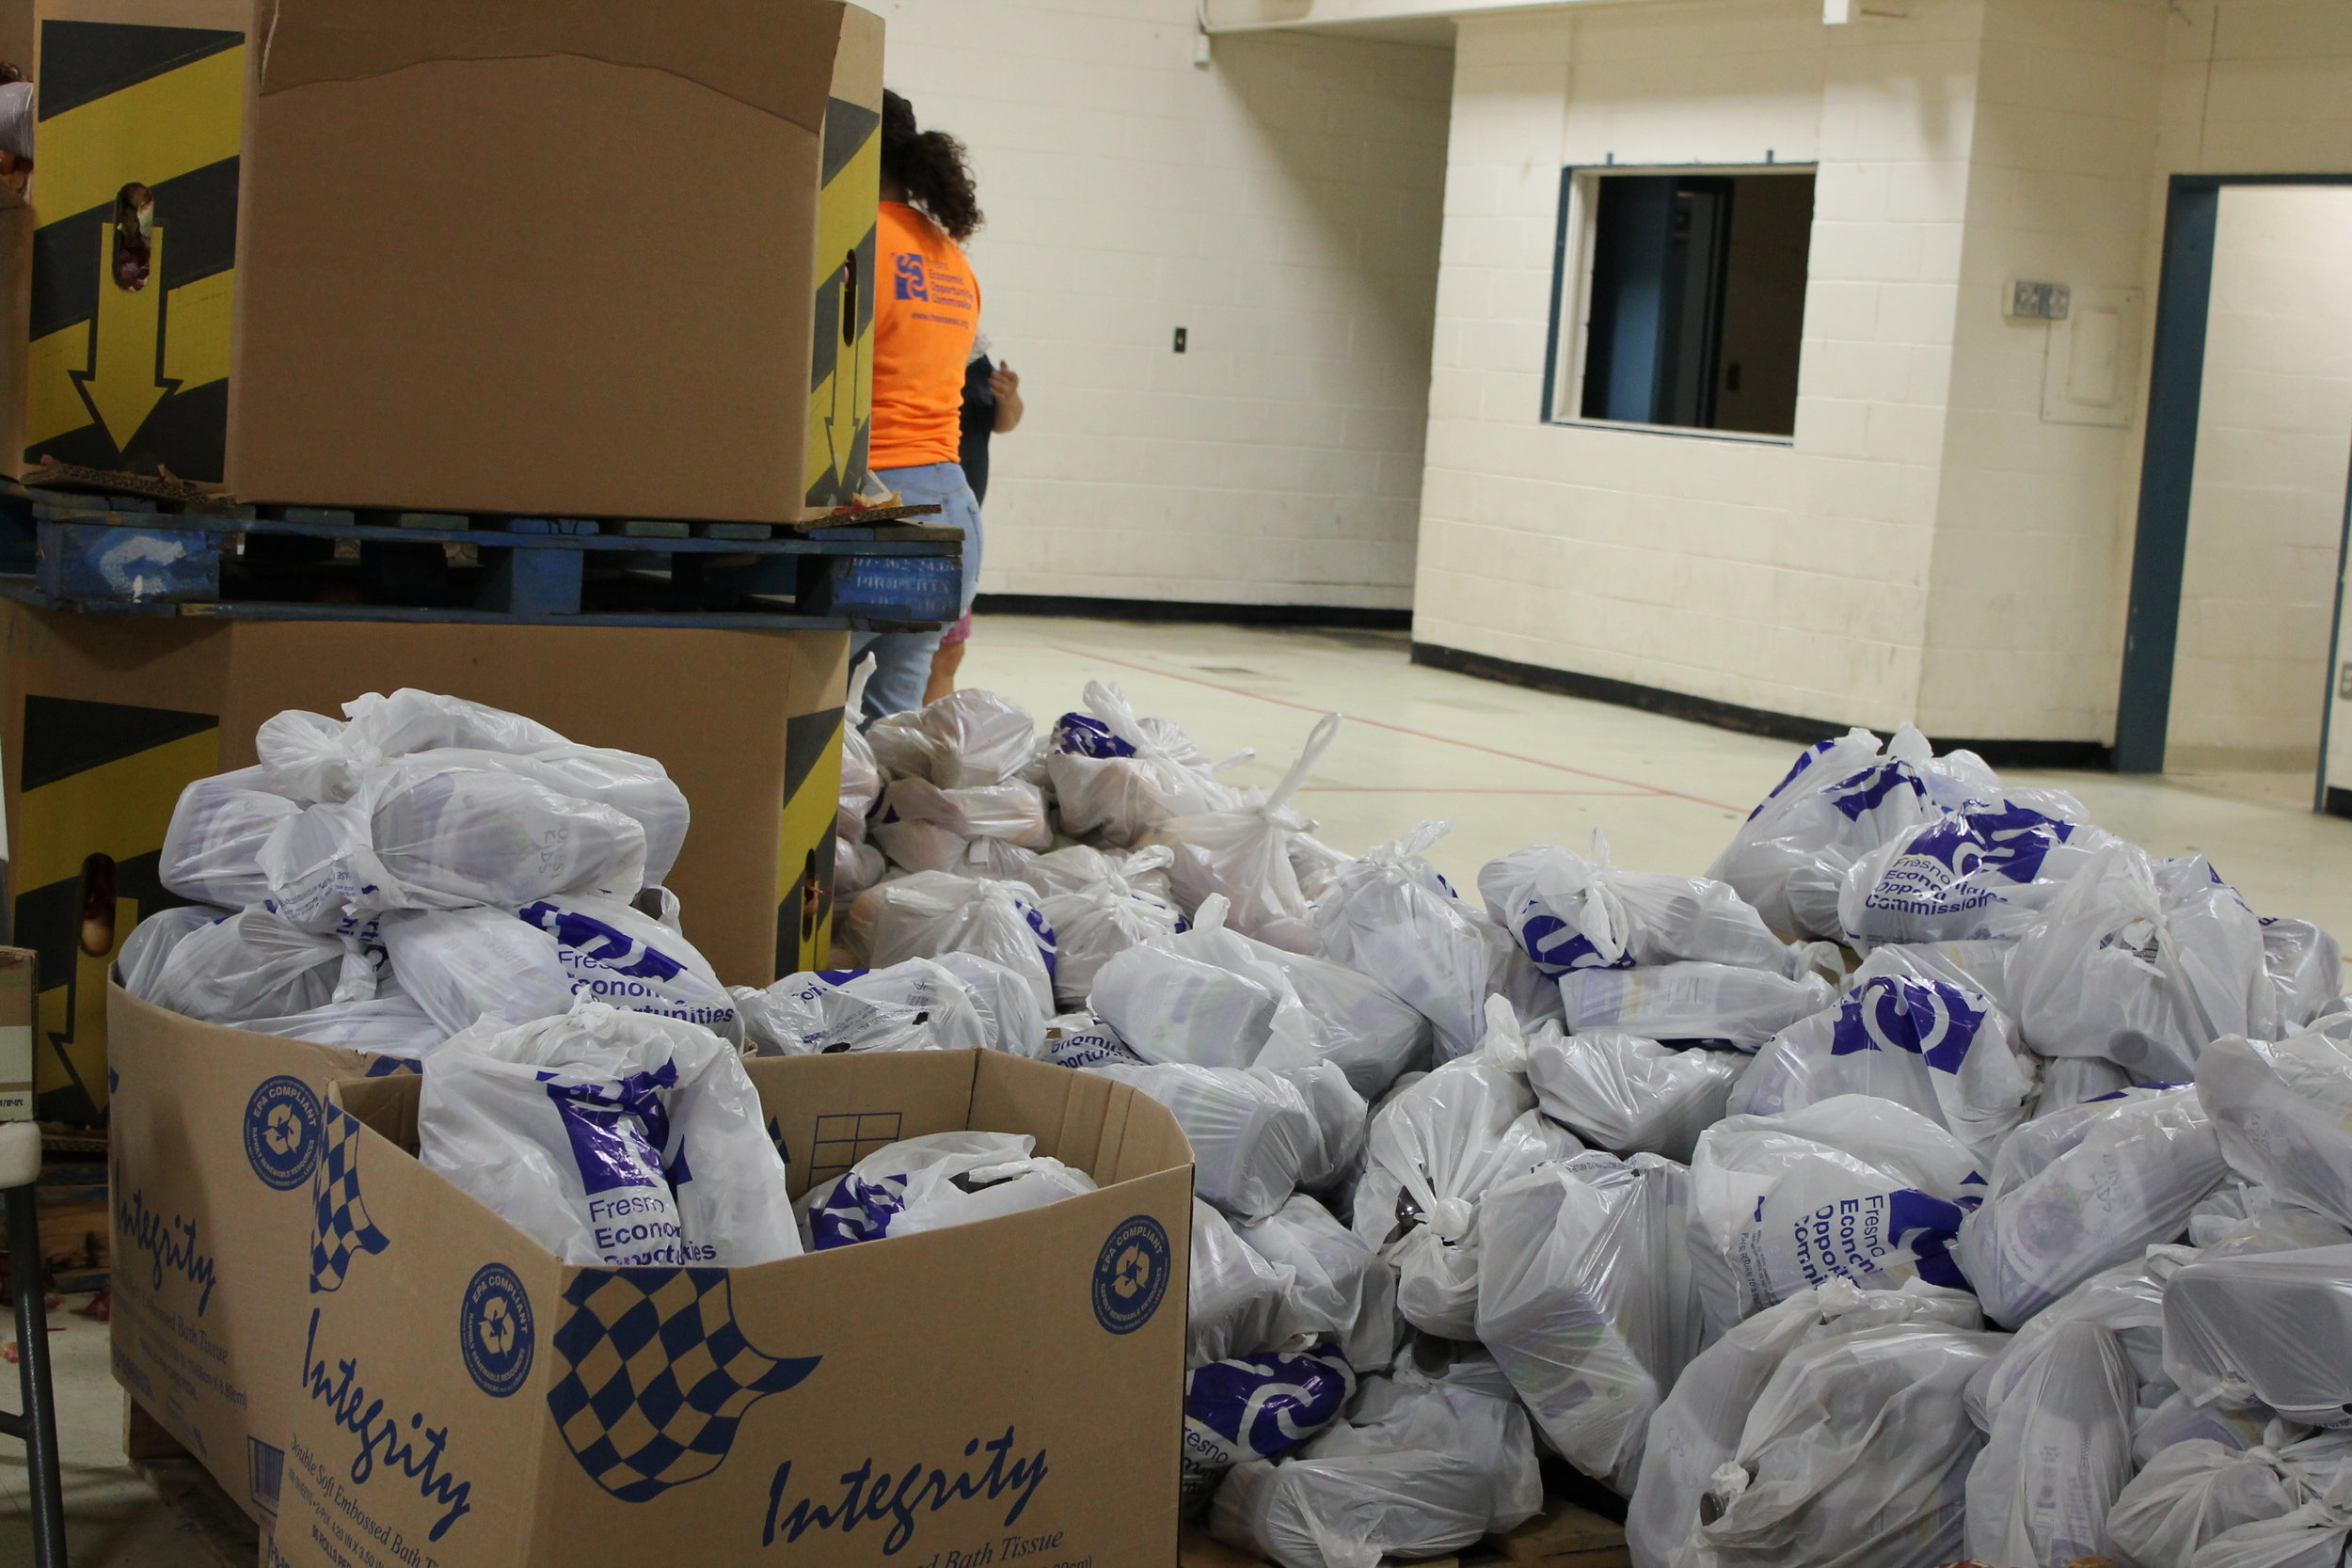 Huron, CA: Bags of food items are distributed to hundreds of farmworker families by the Fresno Economic Opportunities Commission in the community of Huron, CA located in one of the most agriculturally productive regions of California